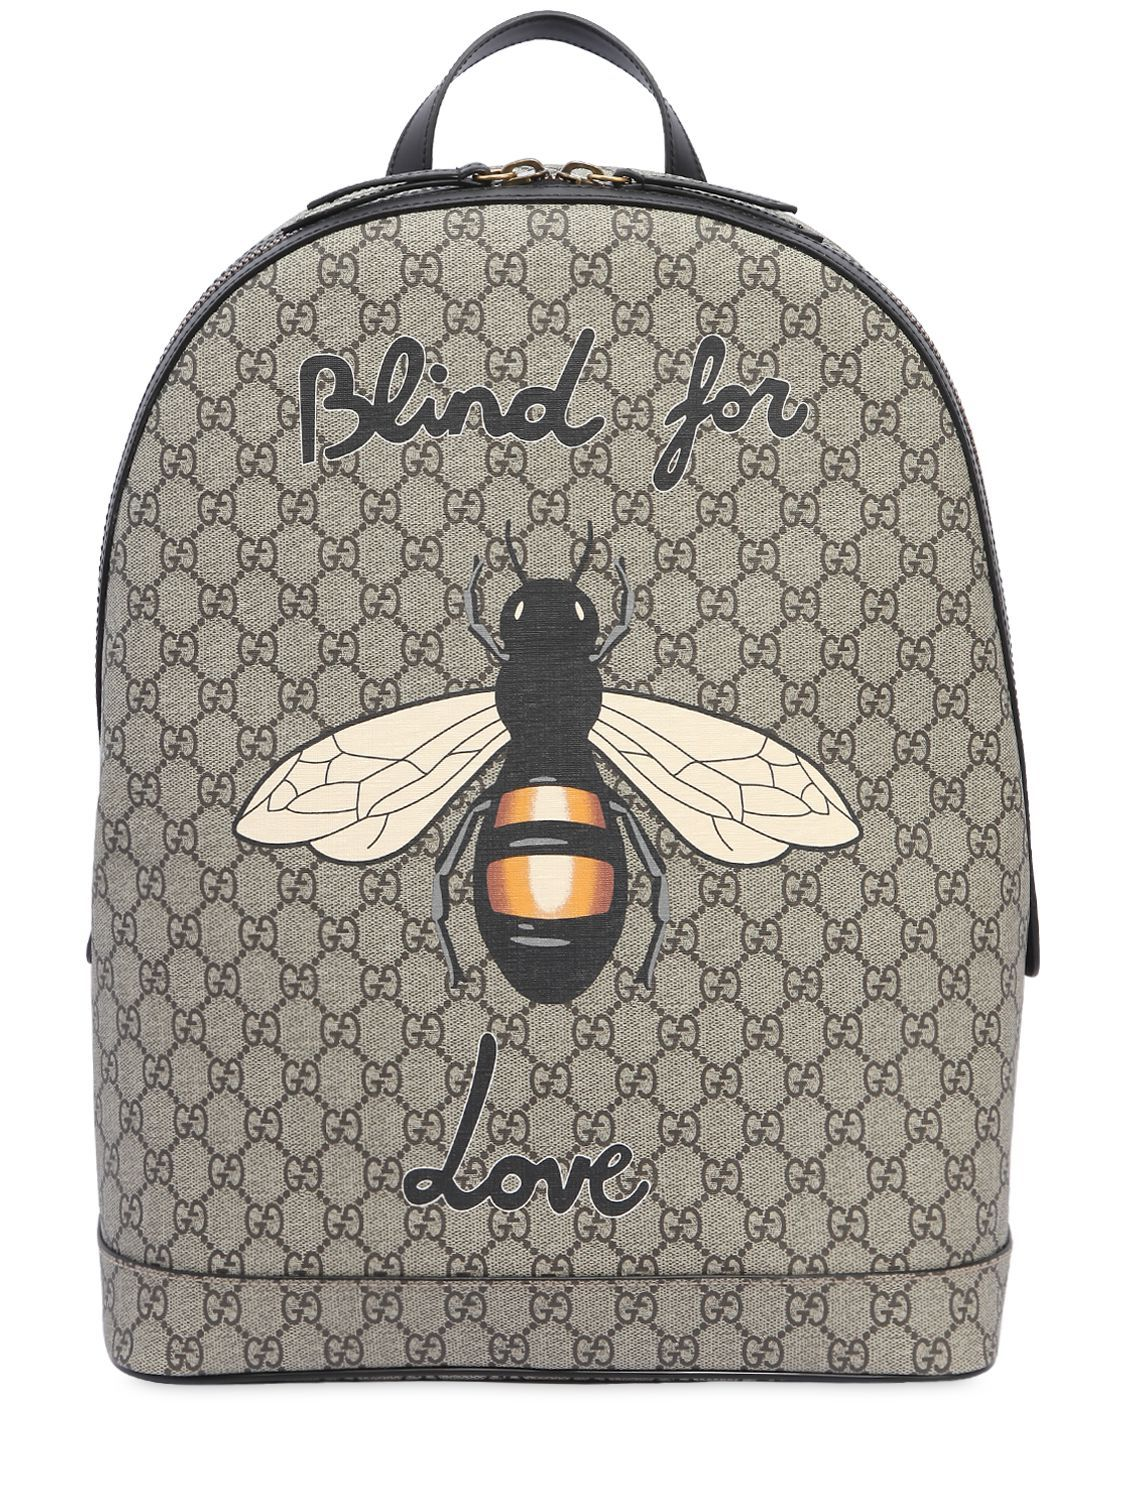 3d0b317fbc1 GUCCI BEE PRINTED GG SUPREME BACKPACK.  gucci  bags  leather  lining  canvas   backpacks